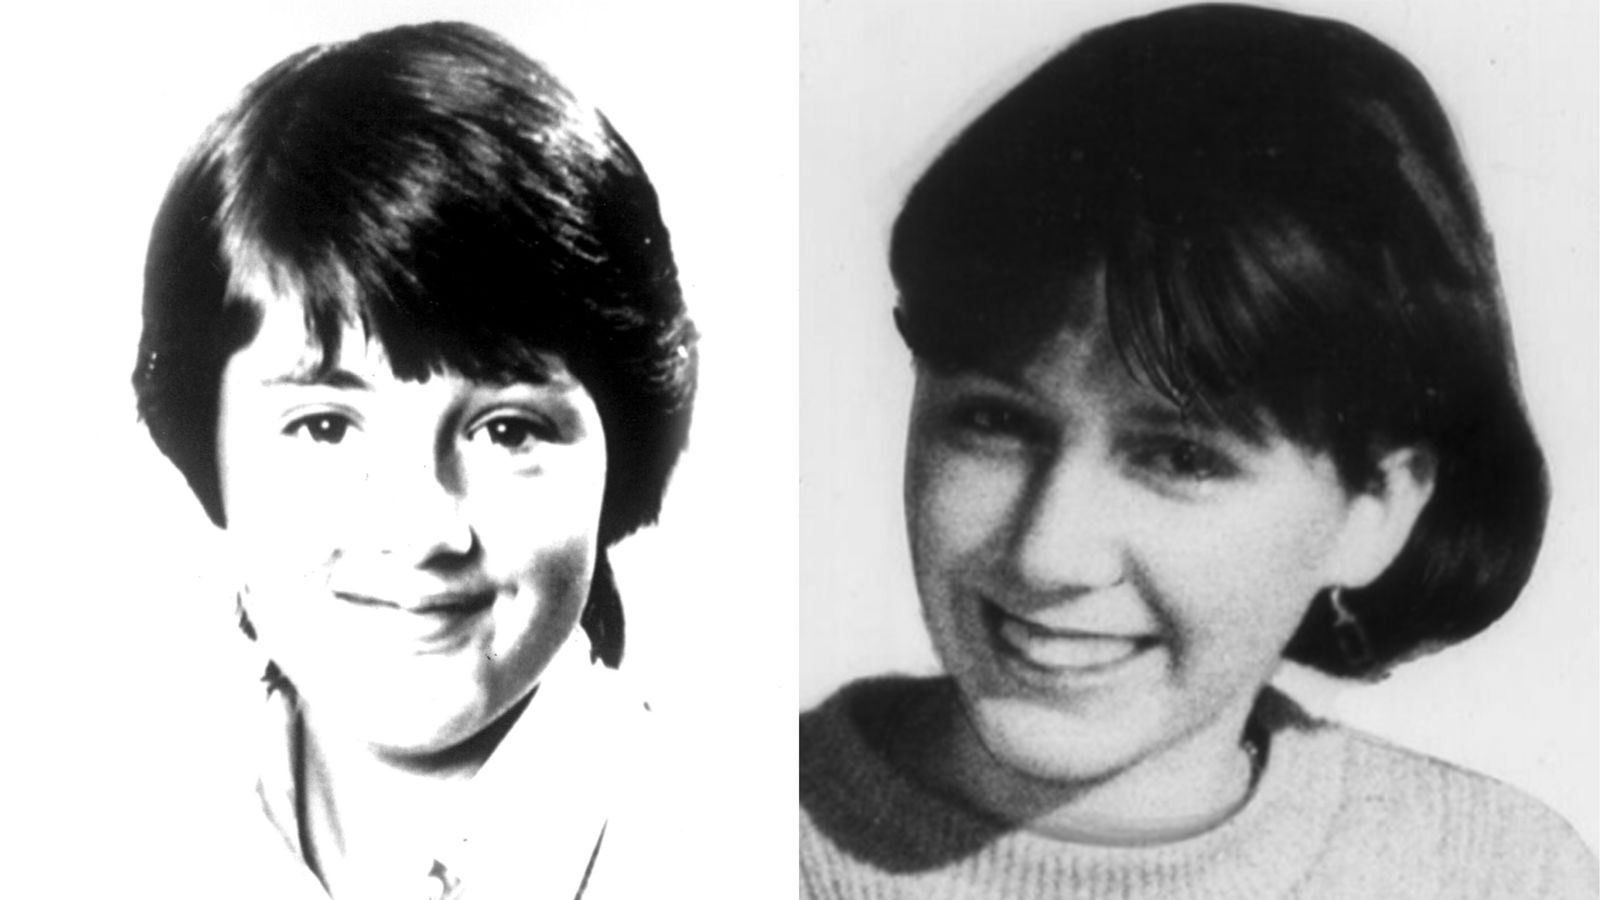 Man who raped and murdered two girls in the 1980s is freed after 33 years in jail